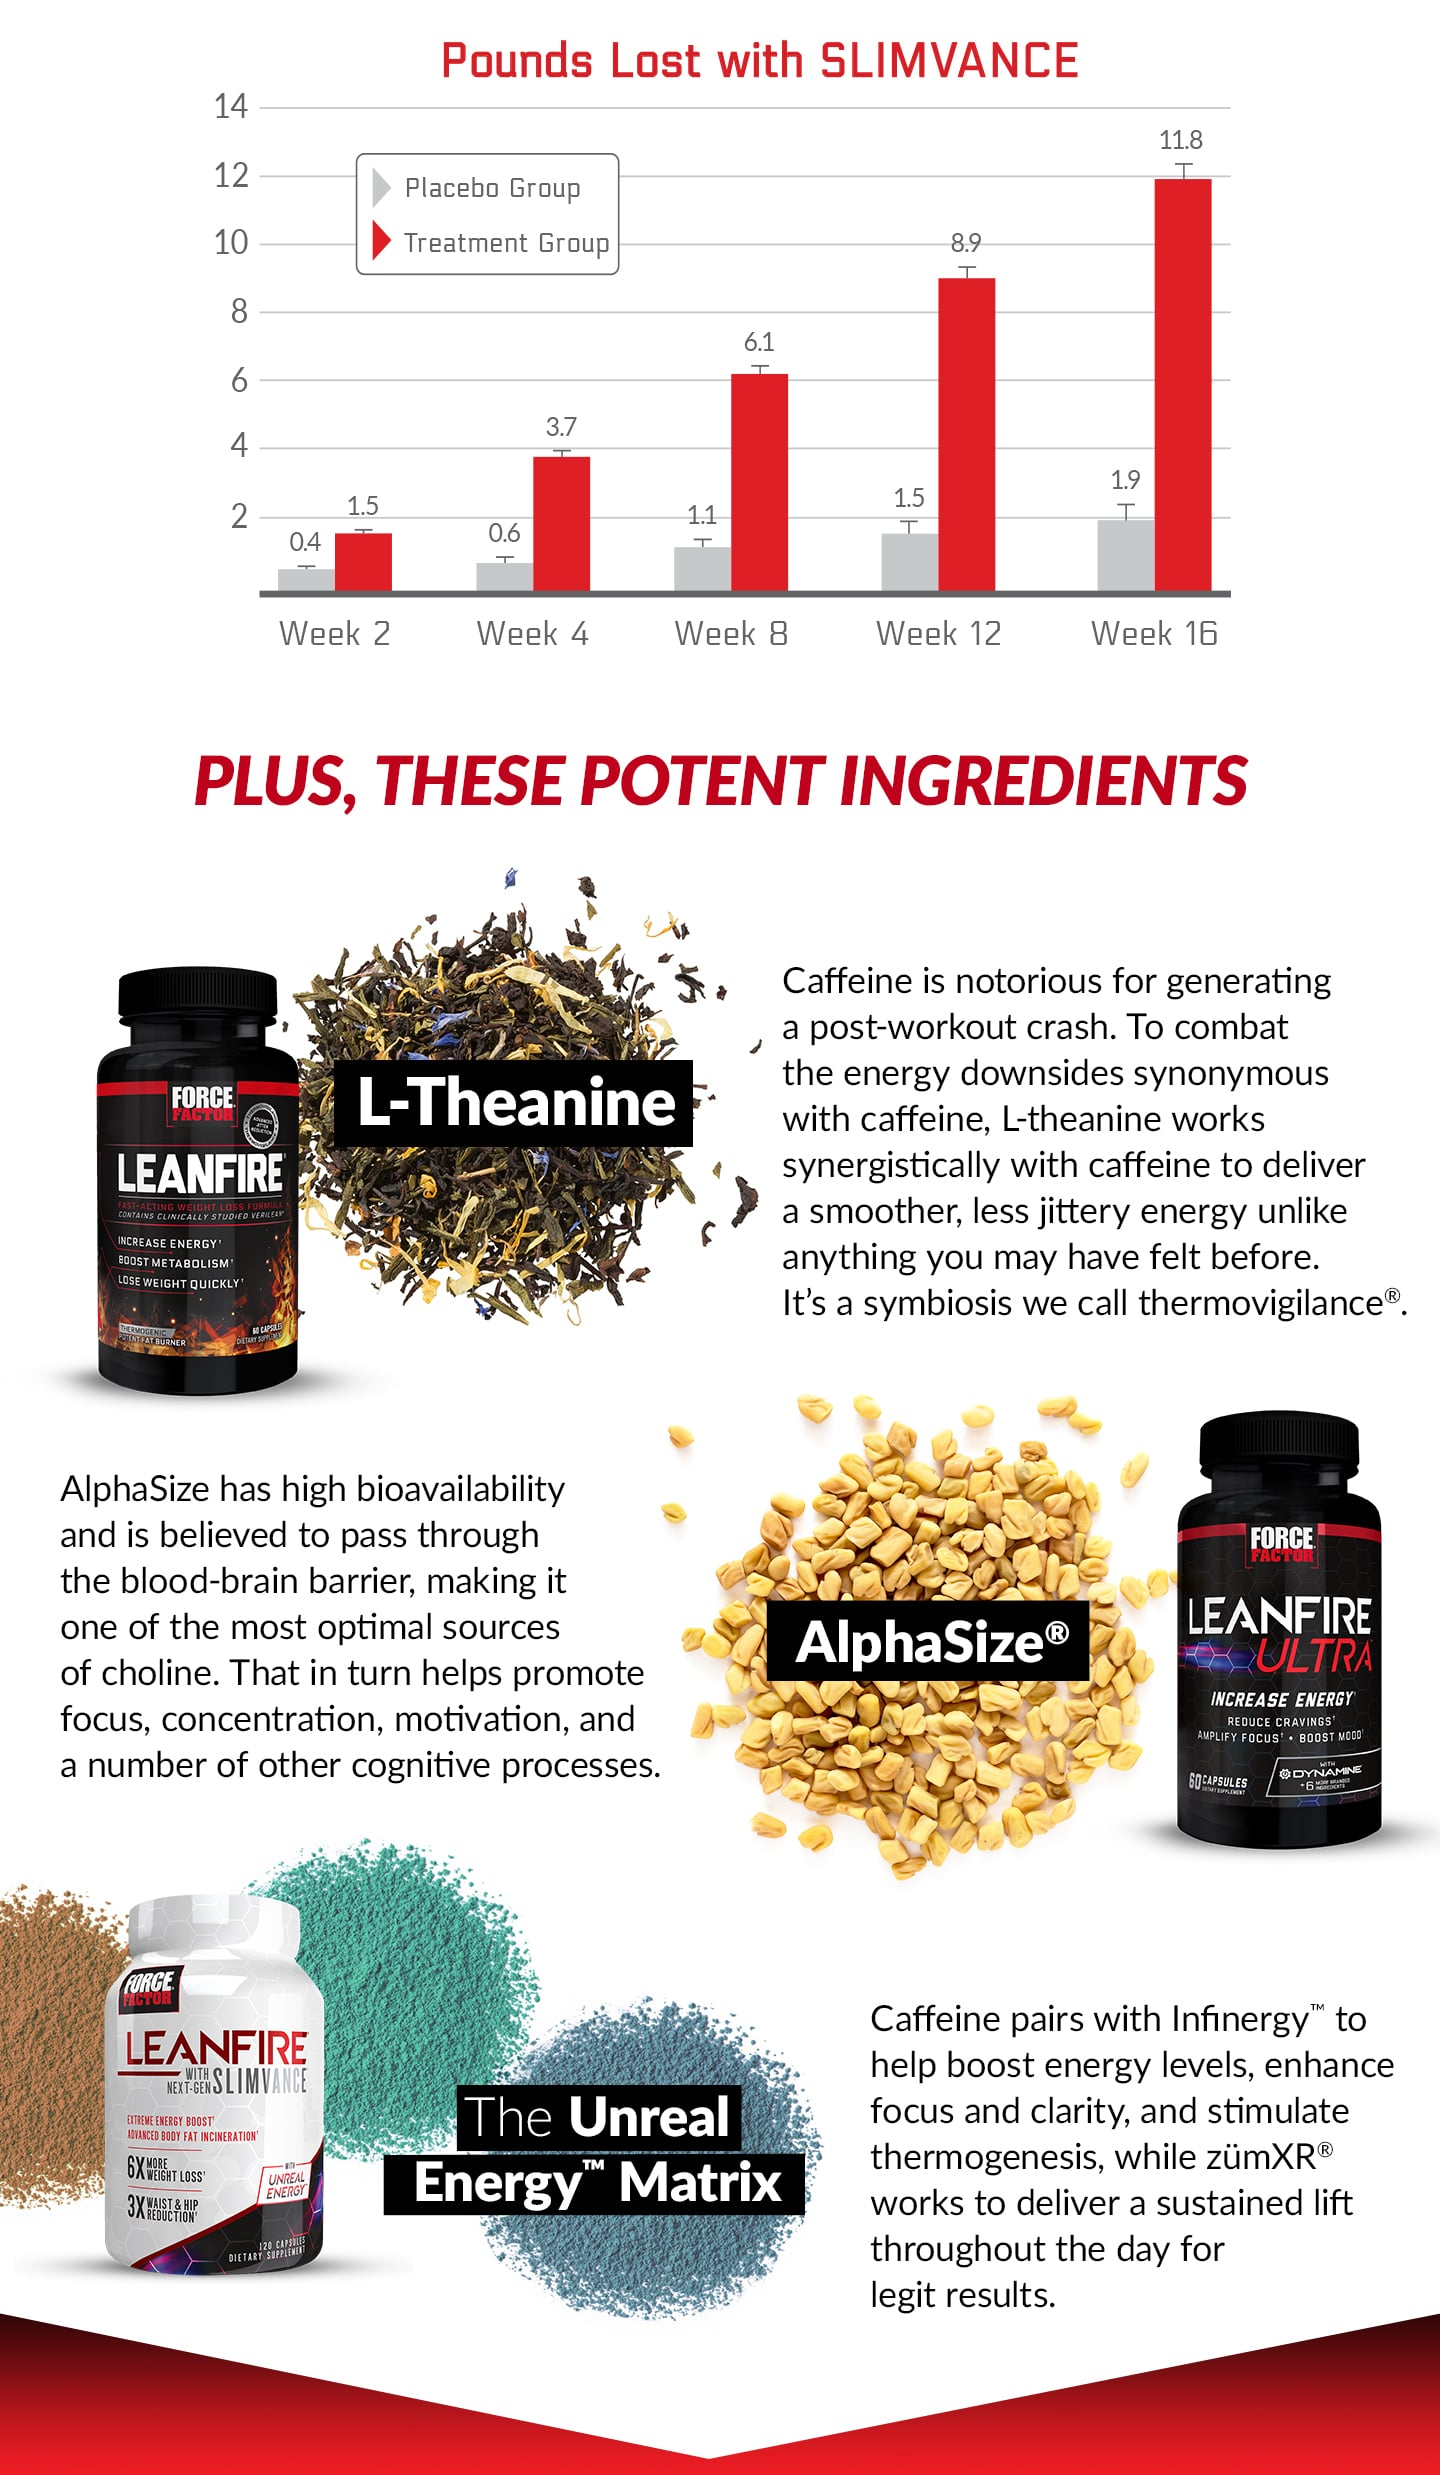 PLUS, THESE POTENT INGREDIENTS - L-Theanine - Caffeine is notorious for generating a post-workout crash. To combat the energy downsides synonymous with caffeine, L-theanine works synergistically with caffeine to deliver a smoother, less jittery energy unlike anything you may have felt before. It's a symbiosis we call thermovigilance®. AlphaSize® - AlphaSize has a high bioavailability and is believed to pass through the blood-brain barrier, making it one of the most optimal sources of choline. That in turn helps promote focus, concentration, motivation, and a number of other cognitive processes. Unreal Energy™ Matrix - Caffeine pairs with Infinergy™ to help boost energy levels, enhance focus and clarity, and stimulate thermogenesis, while zümXR® works to deliver a sustained lift throughout the day for legit results.